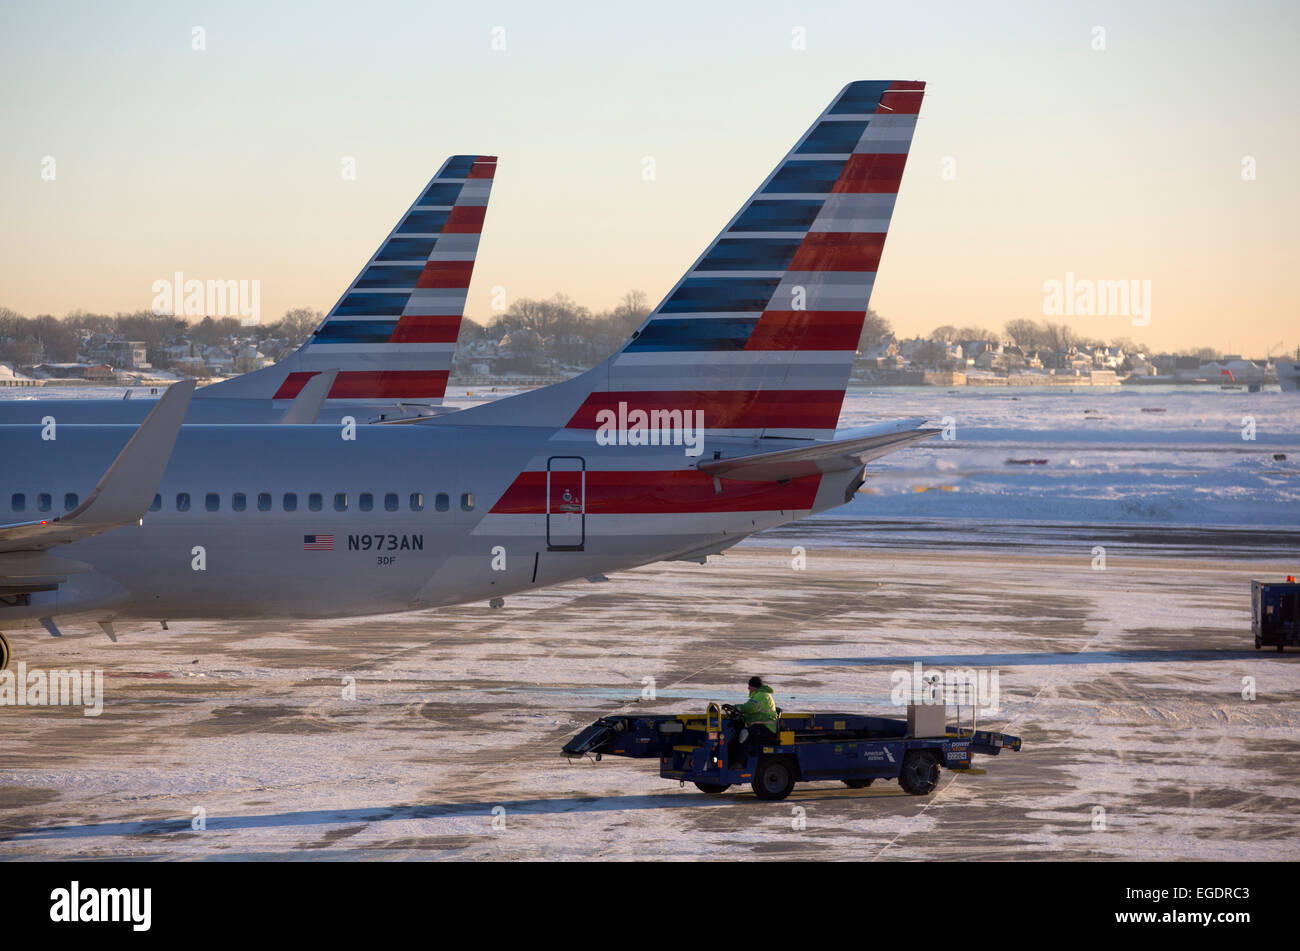 American Airlines jets on the tarmac, Logan International Airport, Boston, Massachusetts - Stock Image